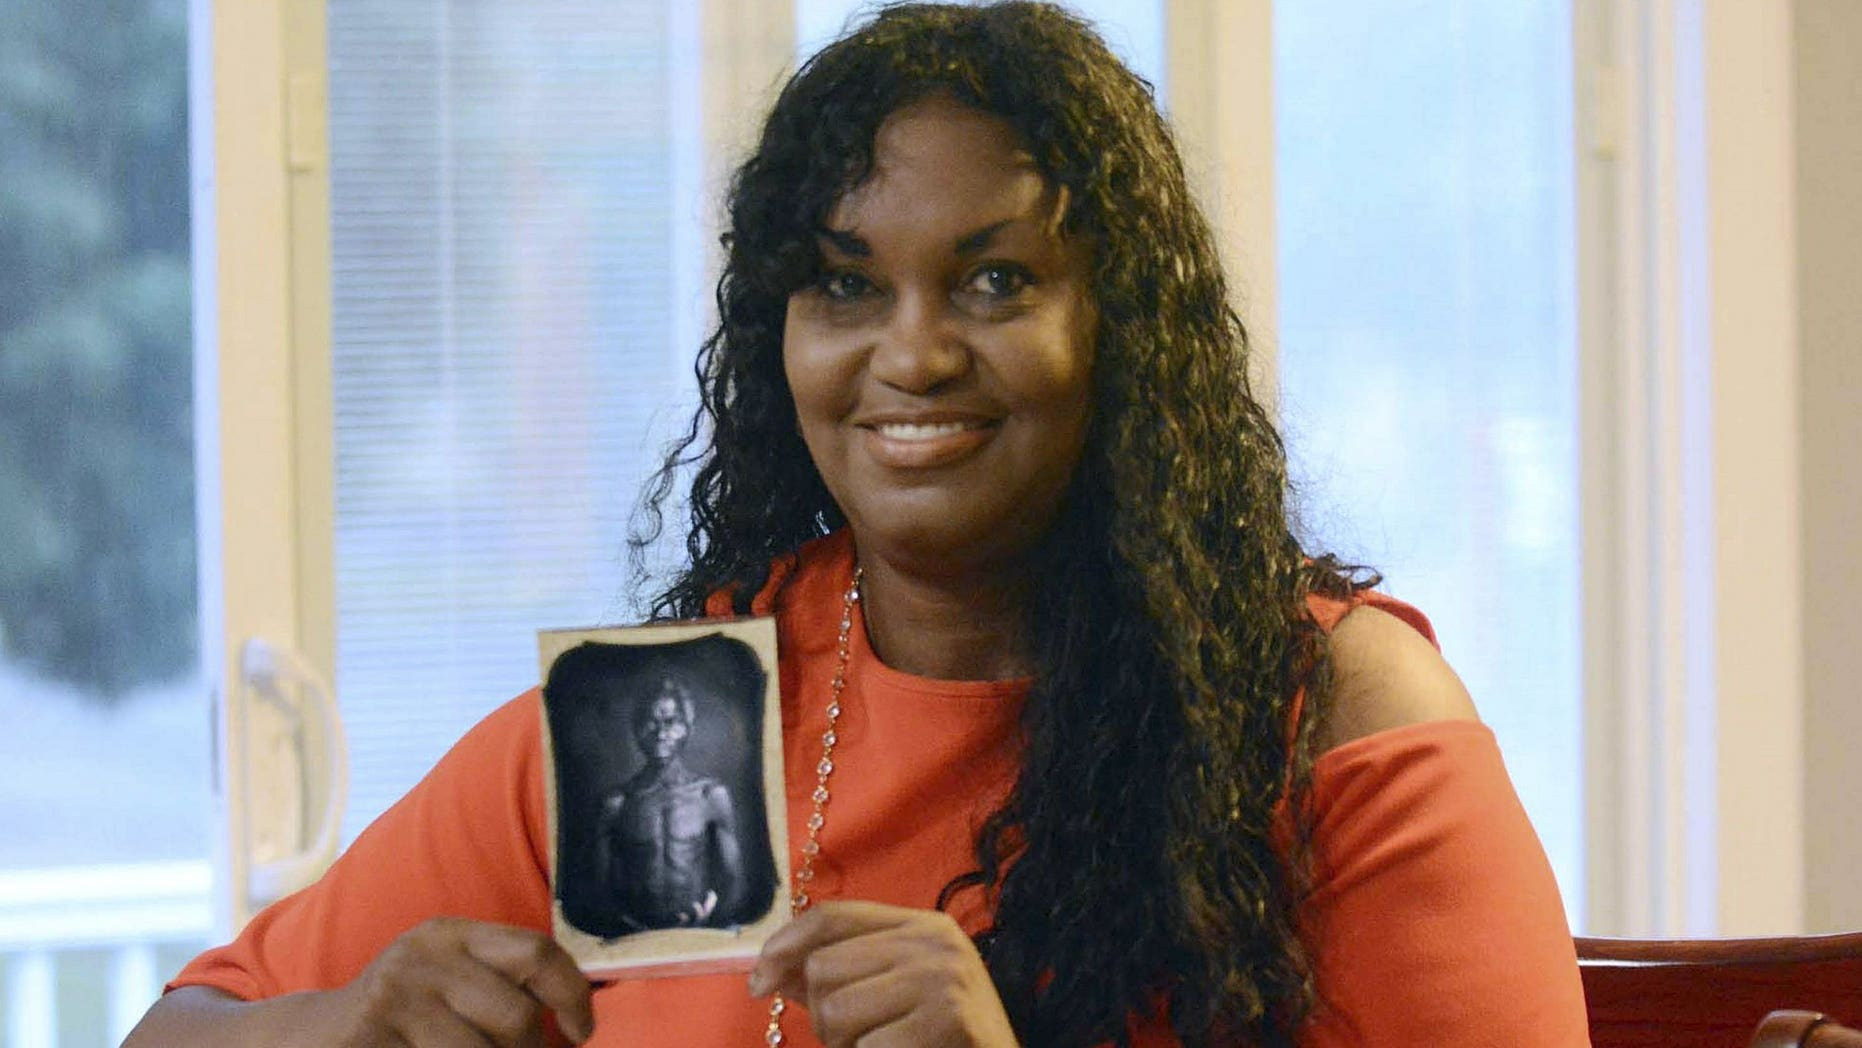 In this July 17, 2018, photo, Tamara Lanier holds an 1850 photograph of Renty, a South Carolina slave who Lanier said is her family's patriarch, at her home in Norwich, Conn. The portrait was commissioned by Harvard biologist Louis Agassiz, whose ideas were used to support the enslavement of Africans in the United States. Lanier filed a lawsuit on Wednesday, March 20, 2019 in Massachusetts state court, demanding that Harvard turn over the photo and pay damages.